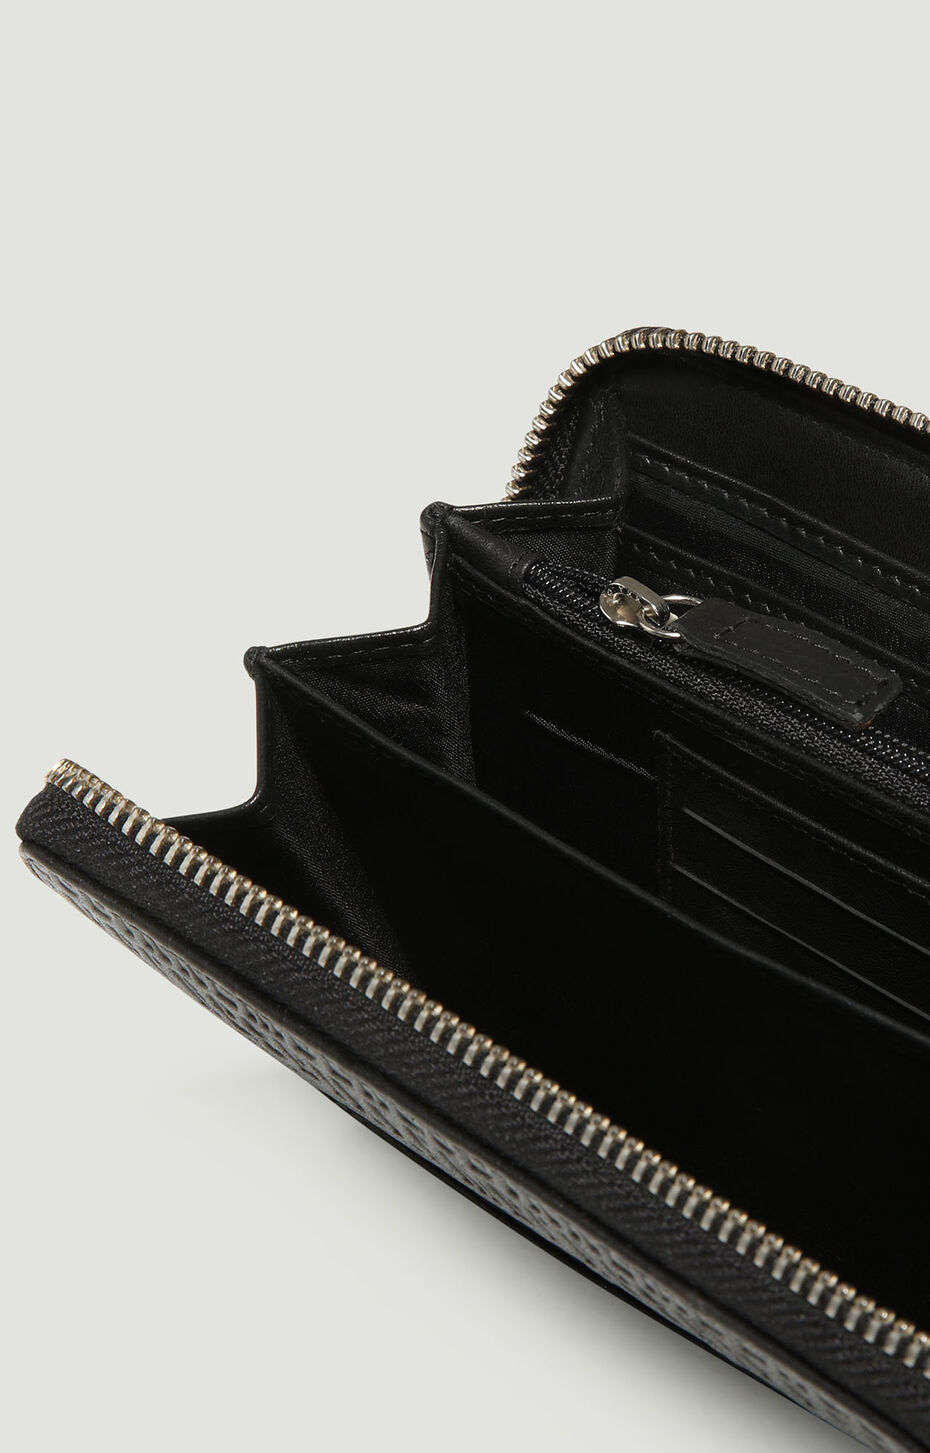 ZIPPED WALLET ALL OVER WALLET 306, Nero, hi-res-1